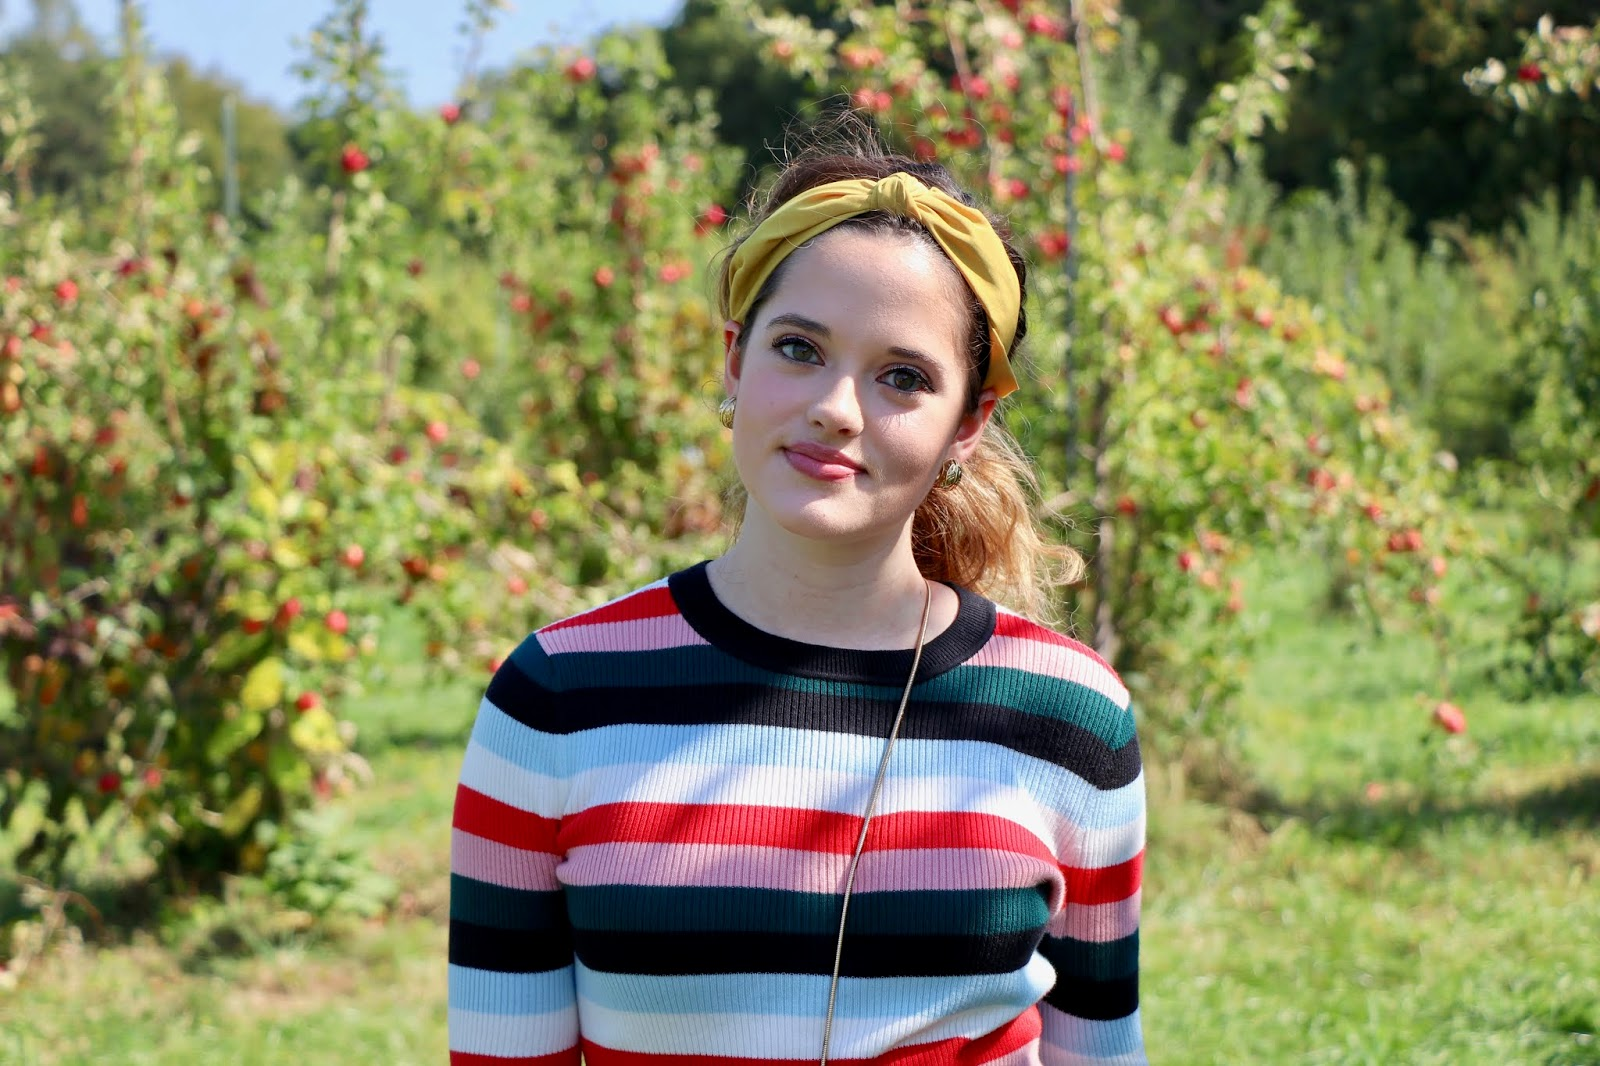 Nyc fashion blogger Kathleen Harper's apple orchard photo shoot at Wilkens Fruit and Fir Farm.